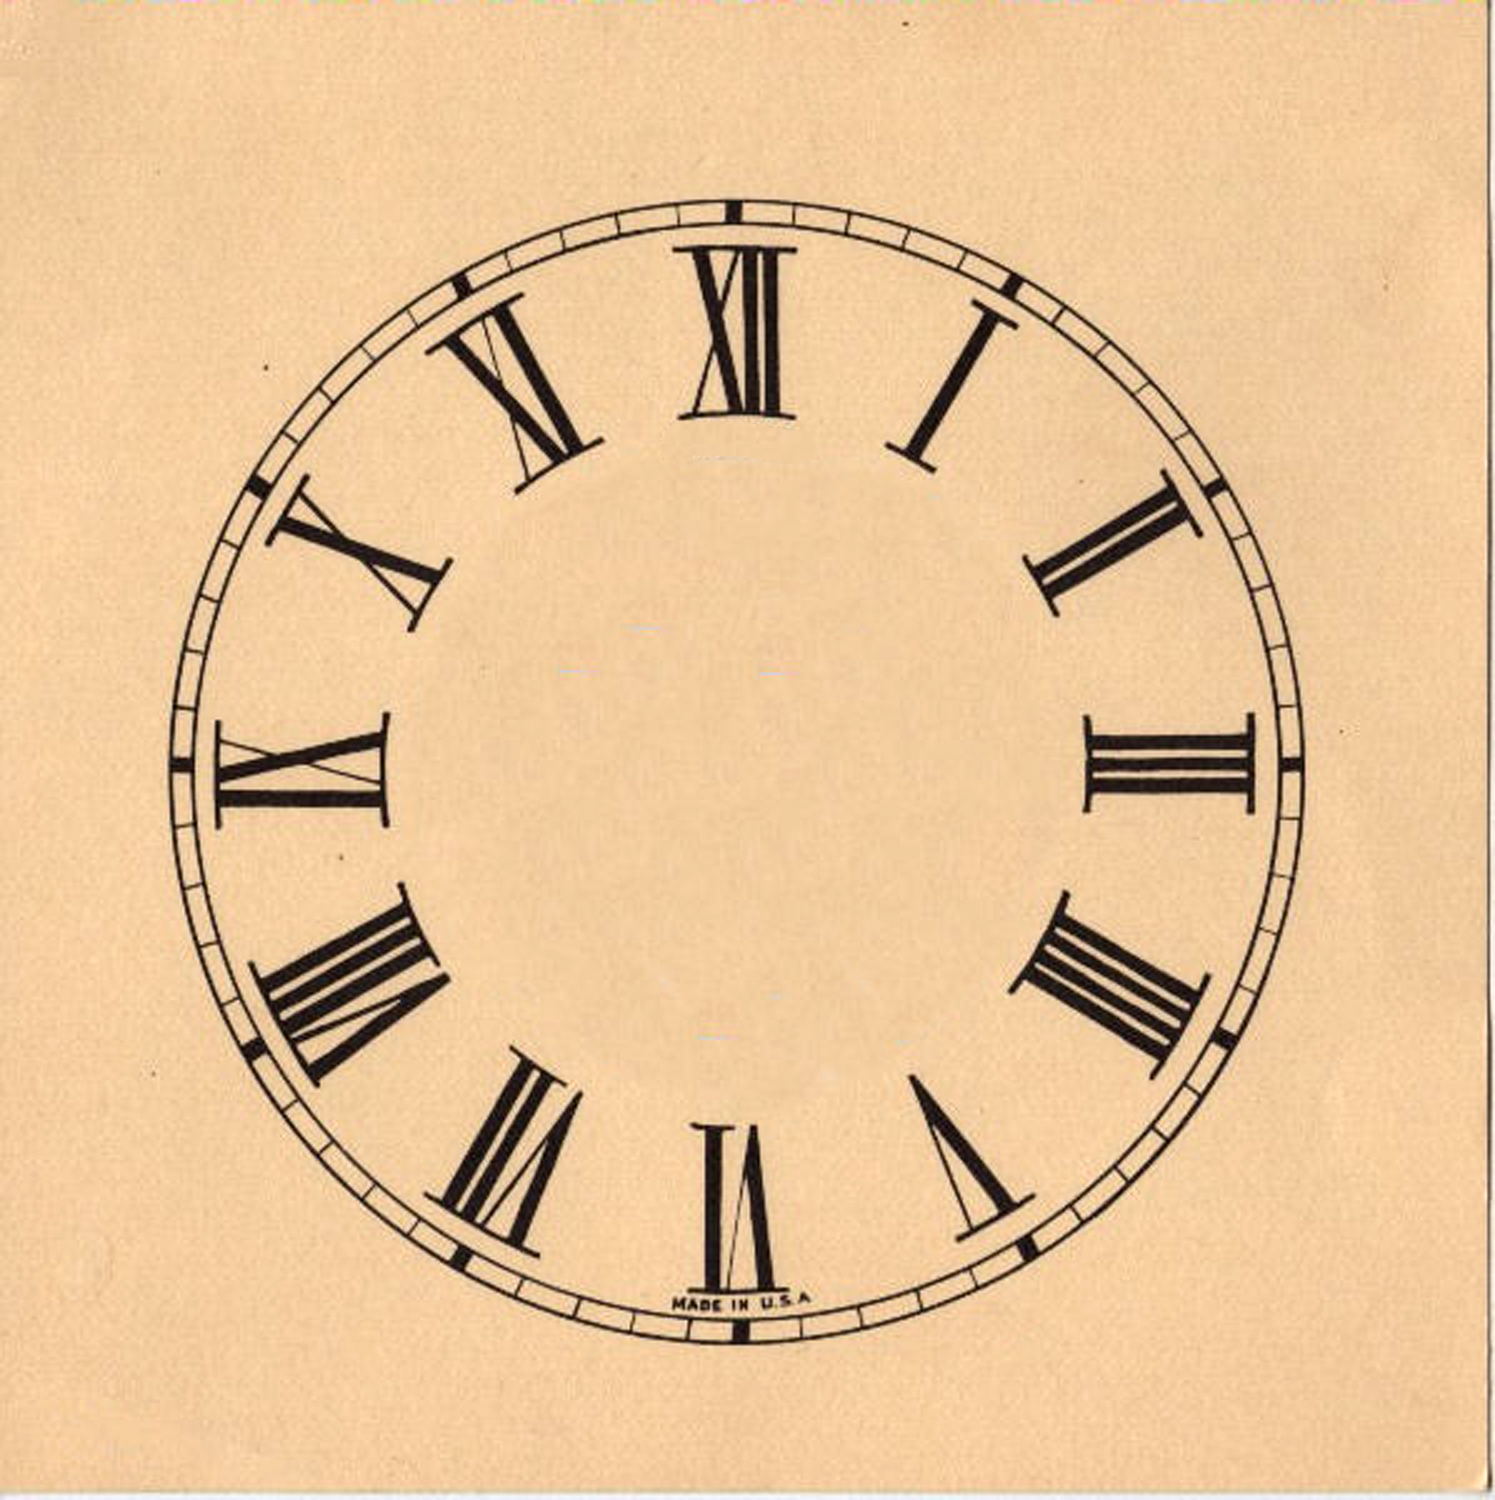 Oval Clock Face 11 Clock Face Images Print Your Own The Graphics Fairy